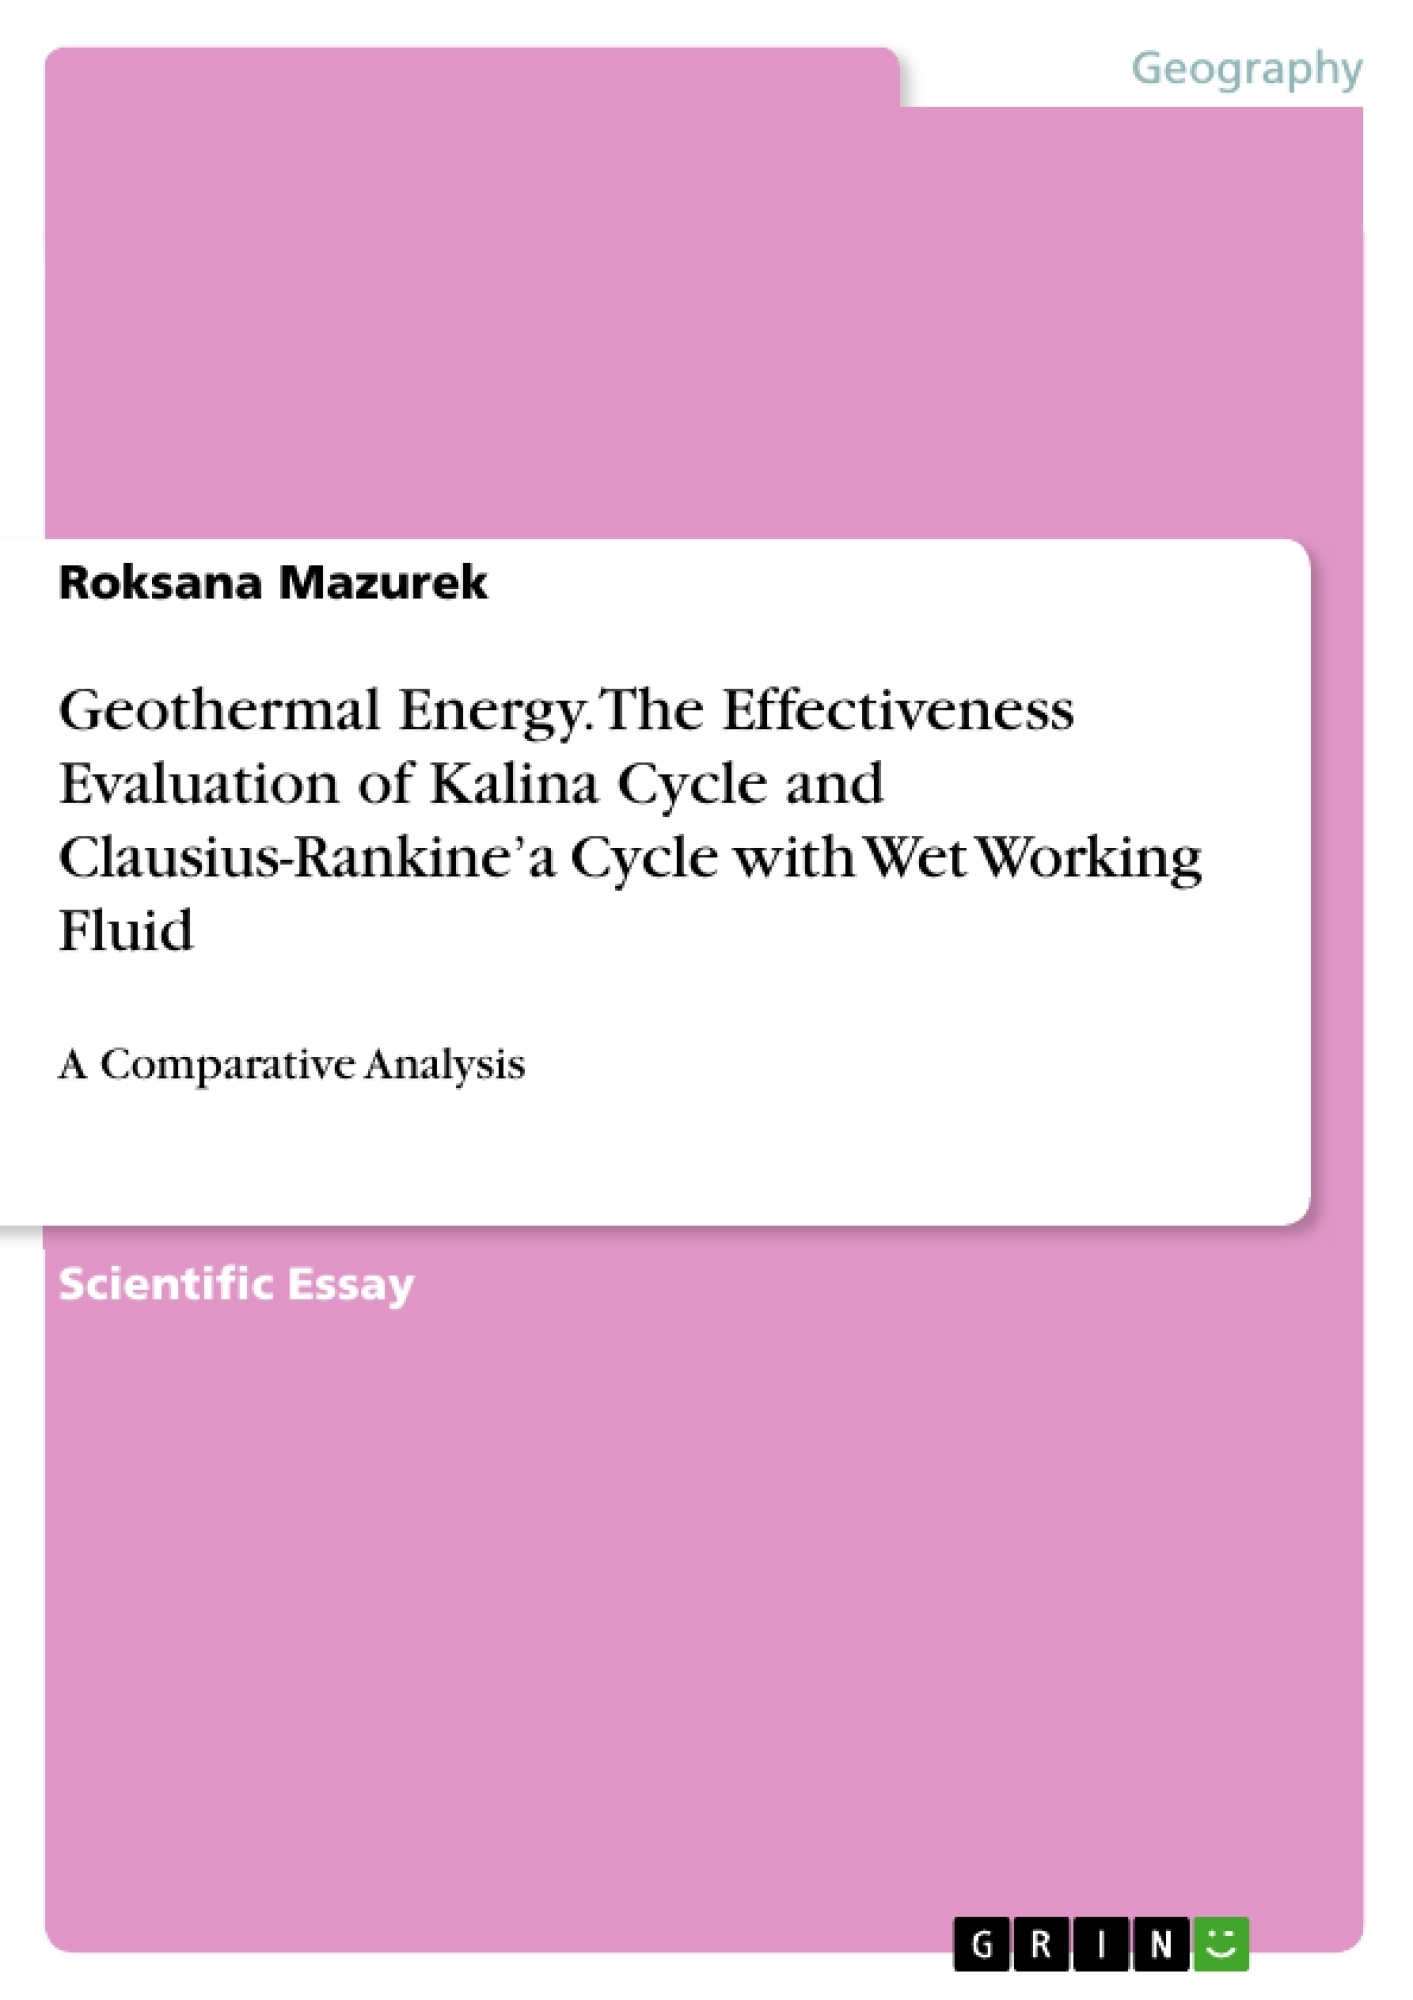 Title: Geothermal Energy. The Effectiveness Evaluation of  Kalina Cycle and Clausius-Rankine'a Cycle with Wet Working Fluid